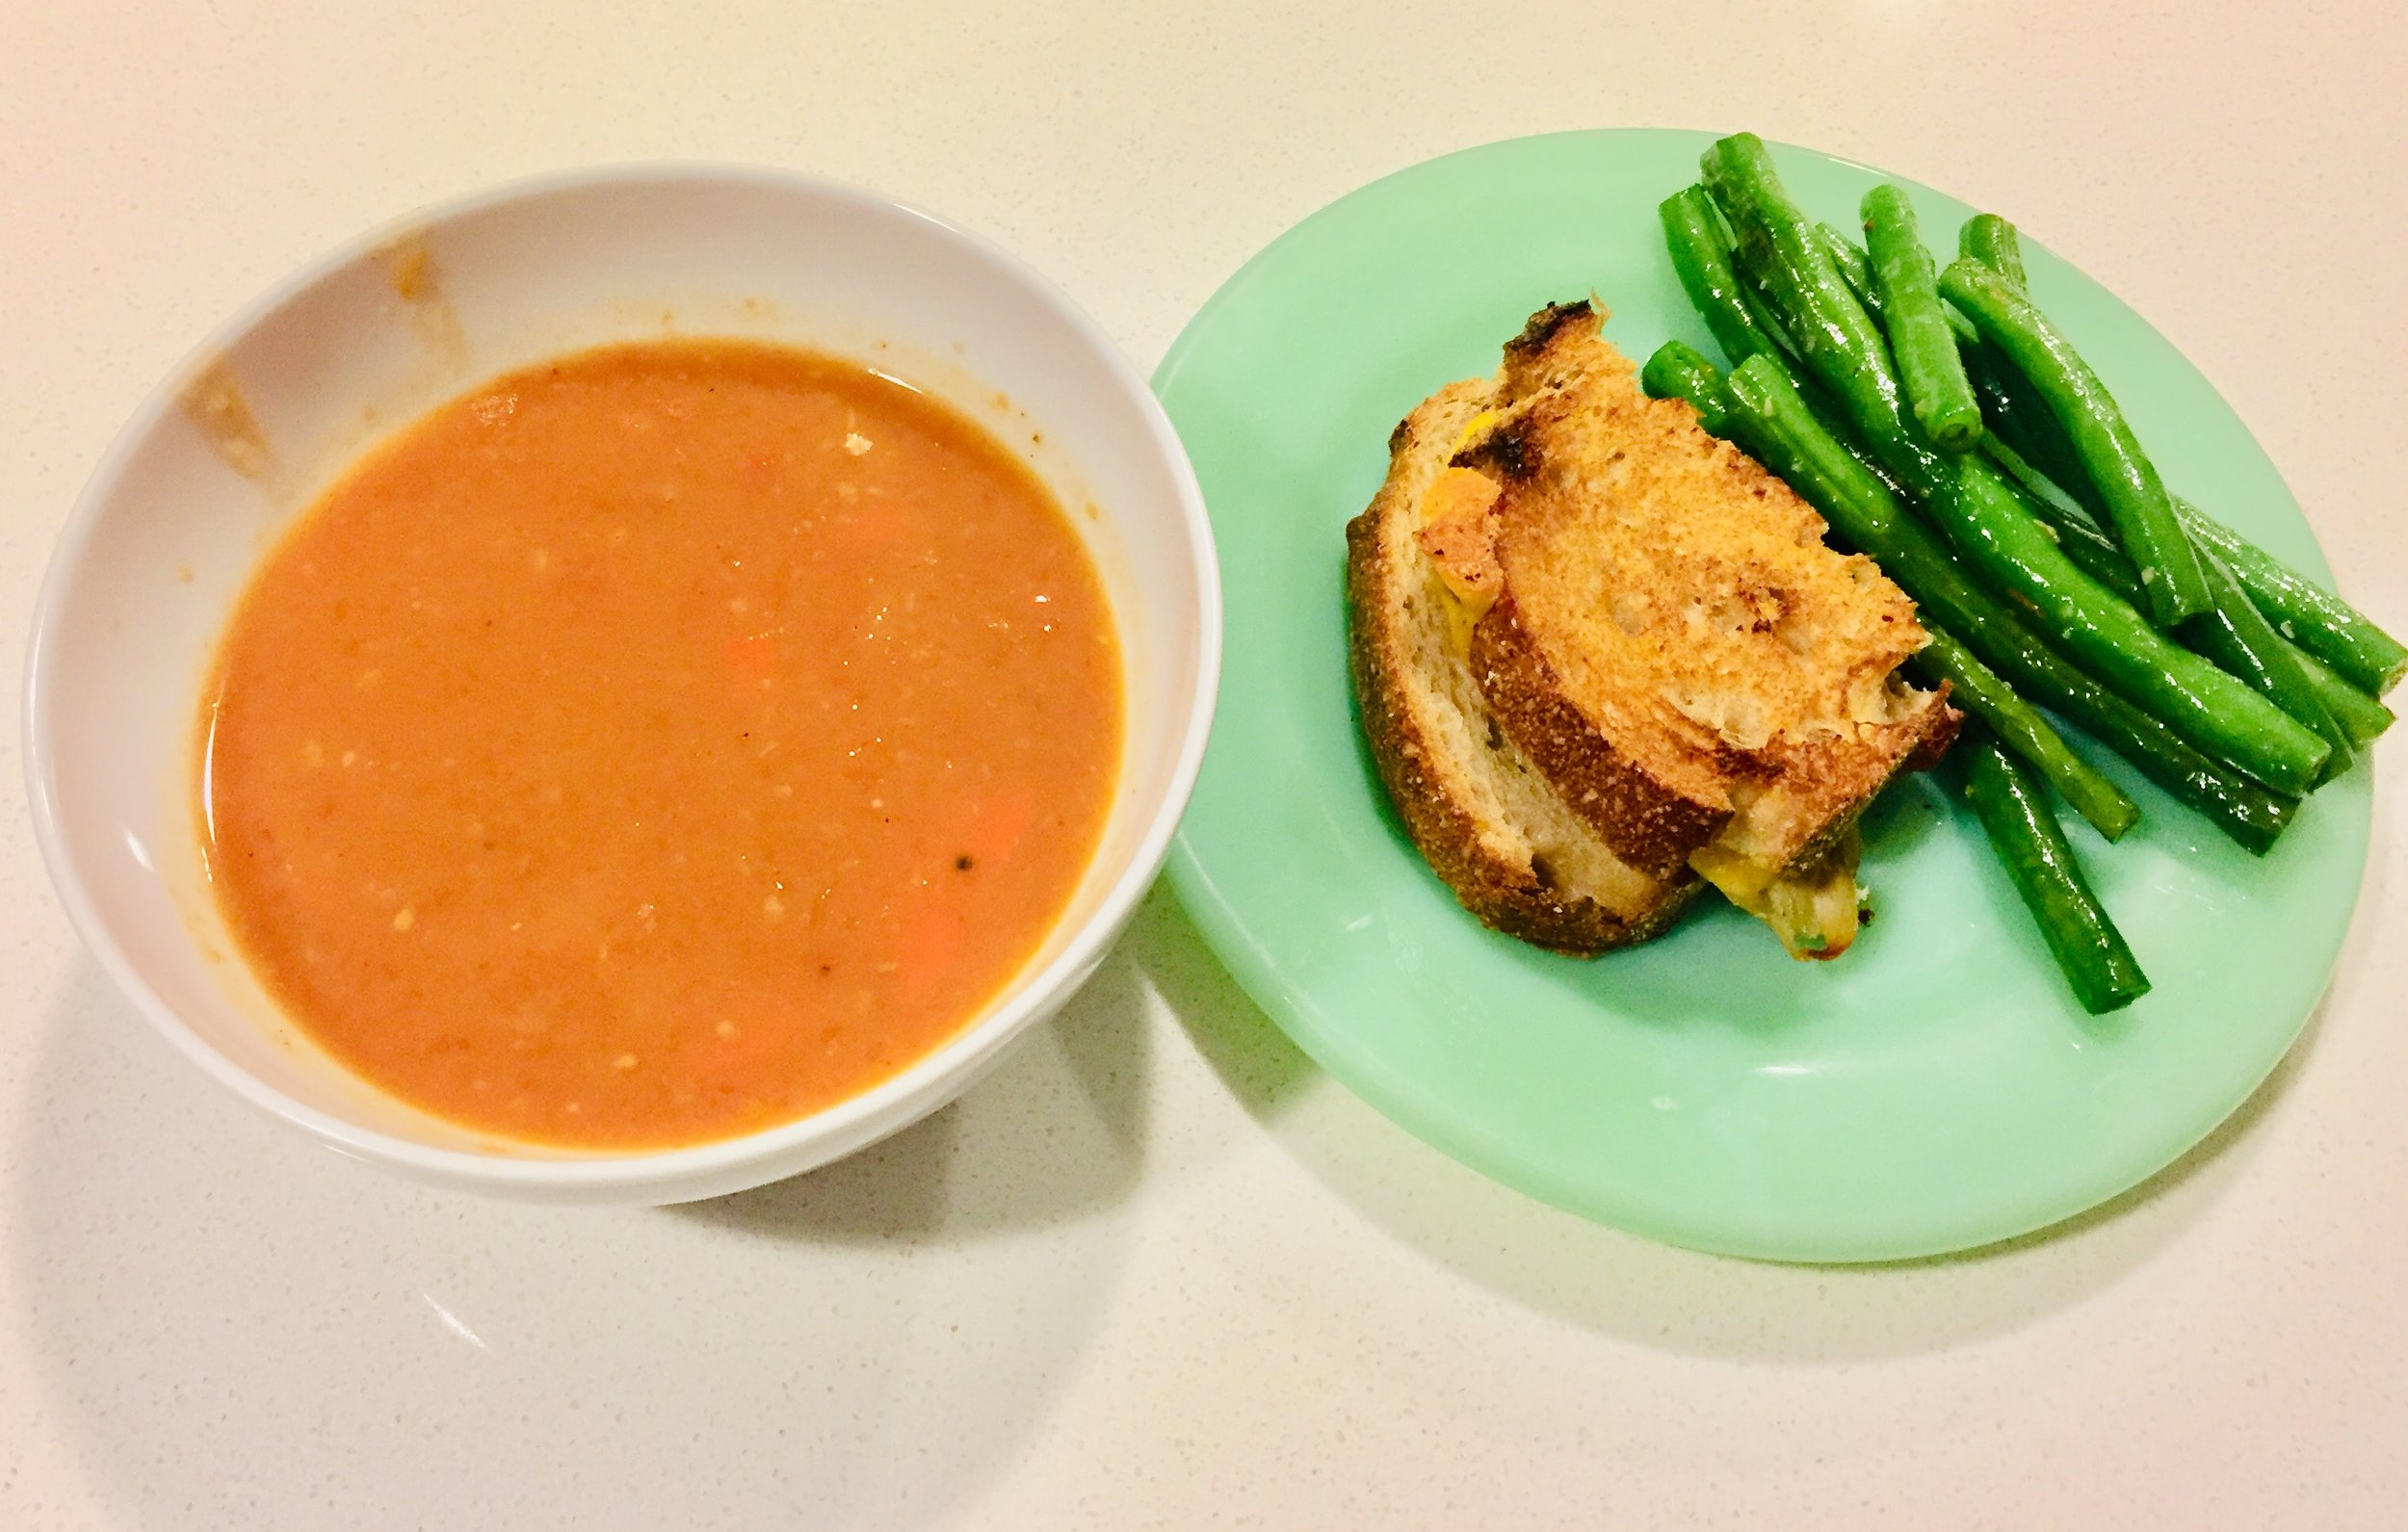 Home made tomato soup, grill cheese sandwich and green beans.